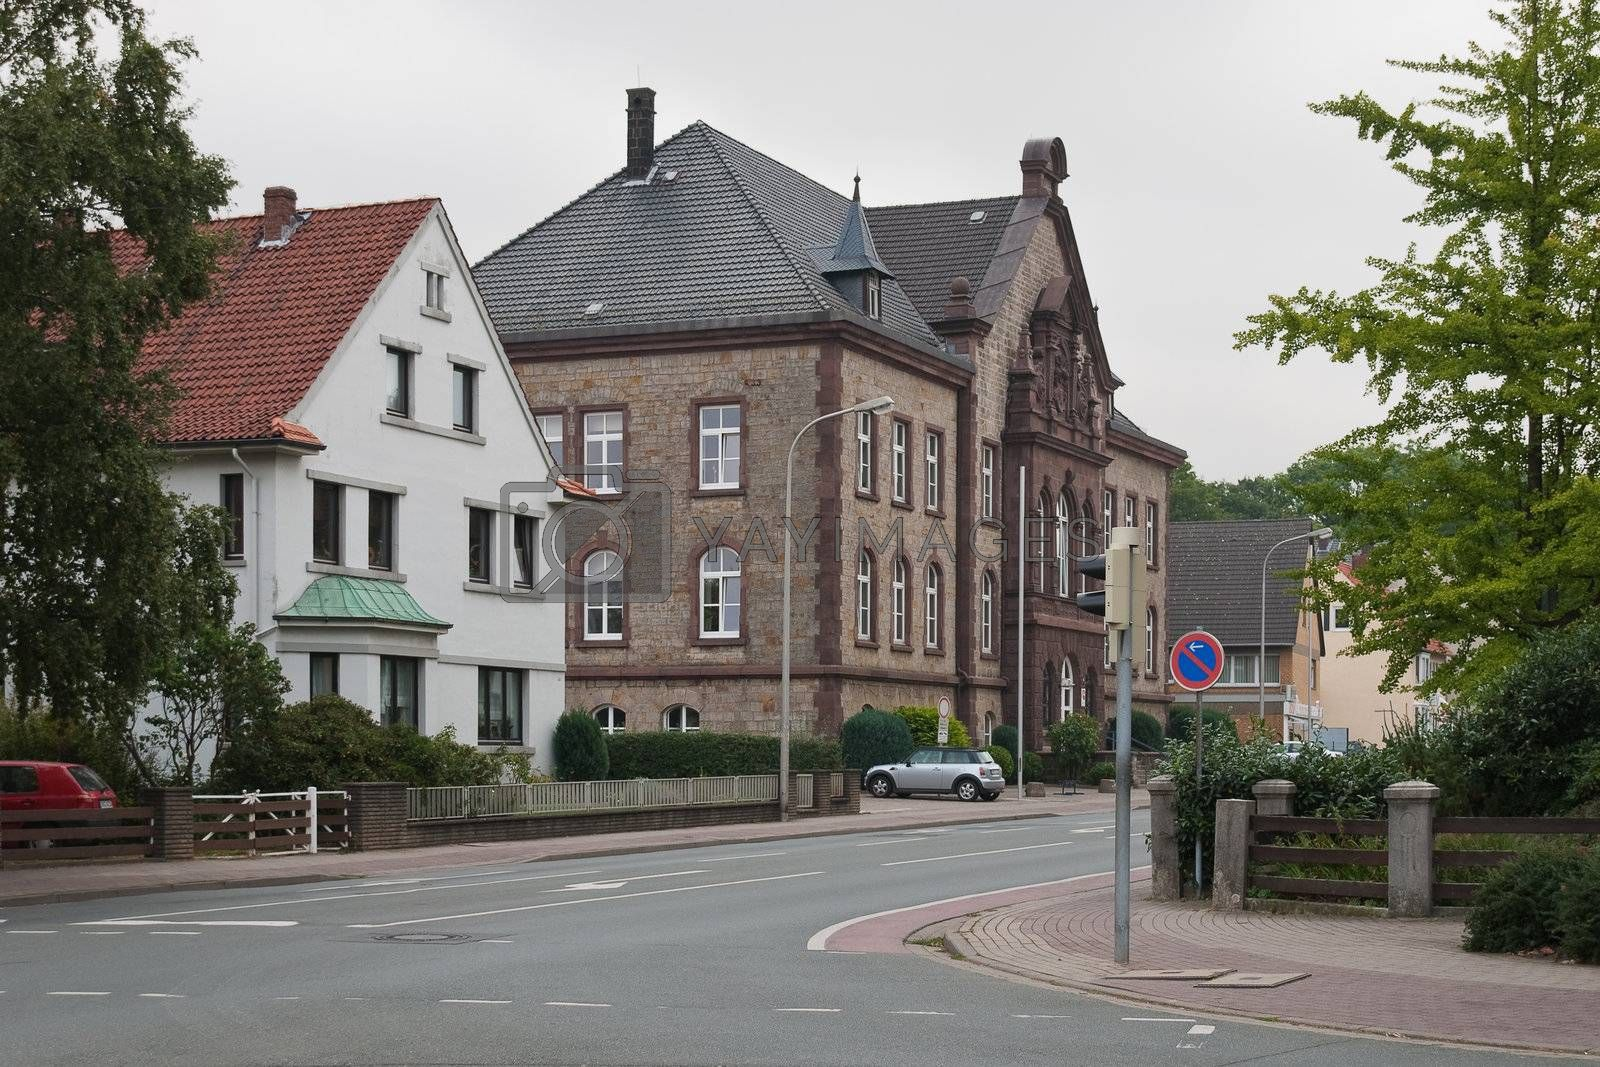 Stadthagen is the capital of the district of Schaumburg, in Lower Saxony, Germany